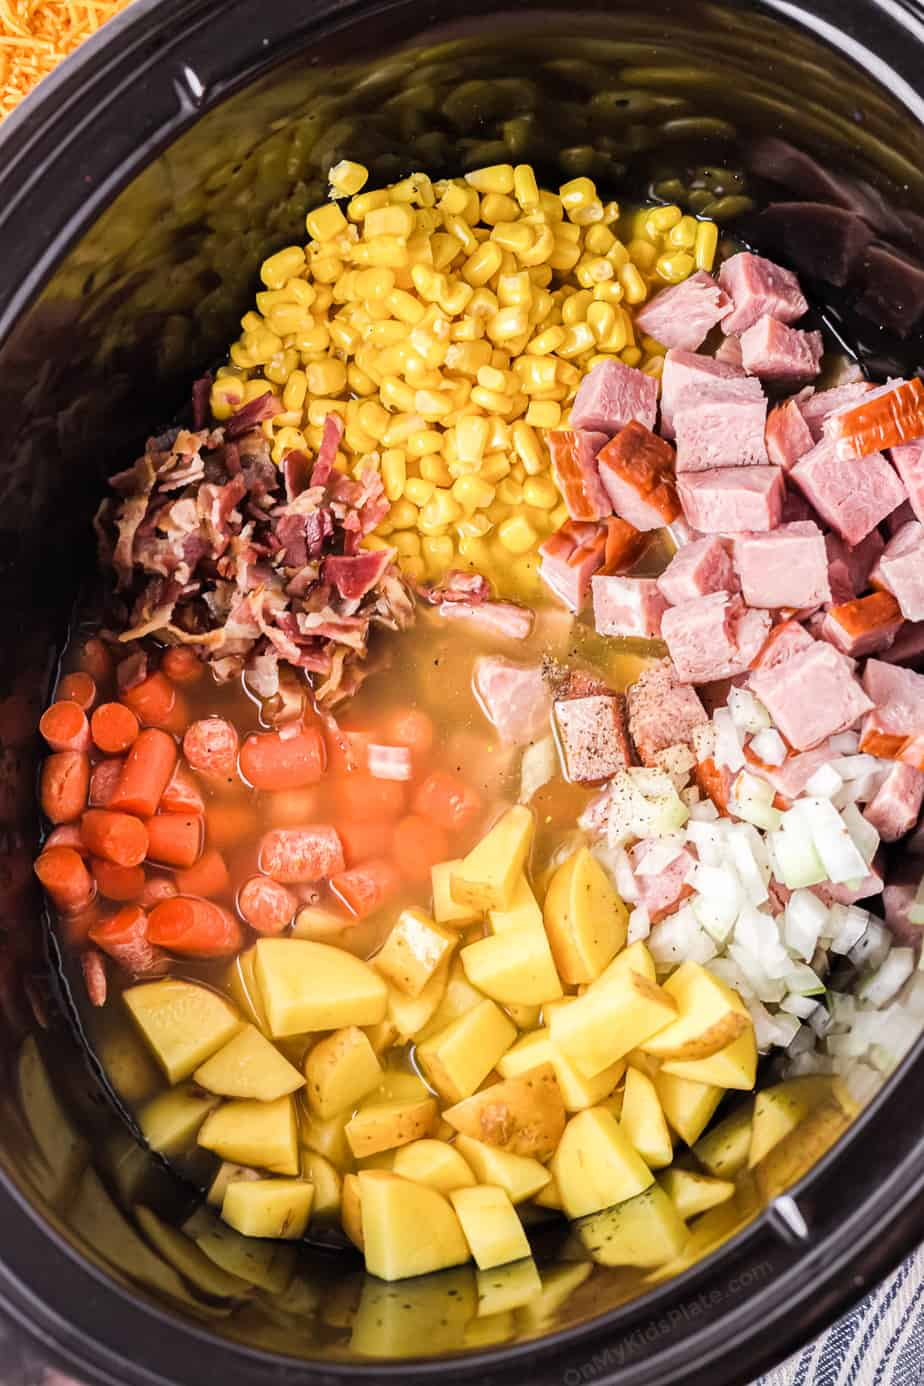 Diced potatoes, ham, bacon, carrots, onions and corn in a broth in a slowcooker pot.